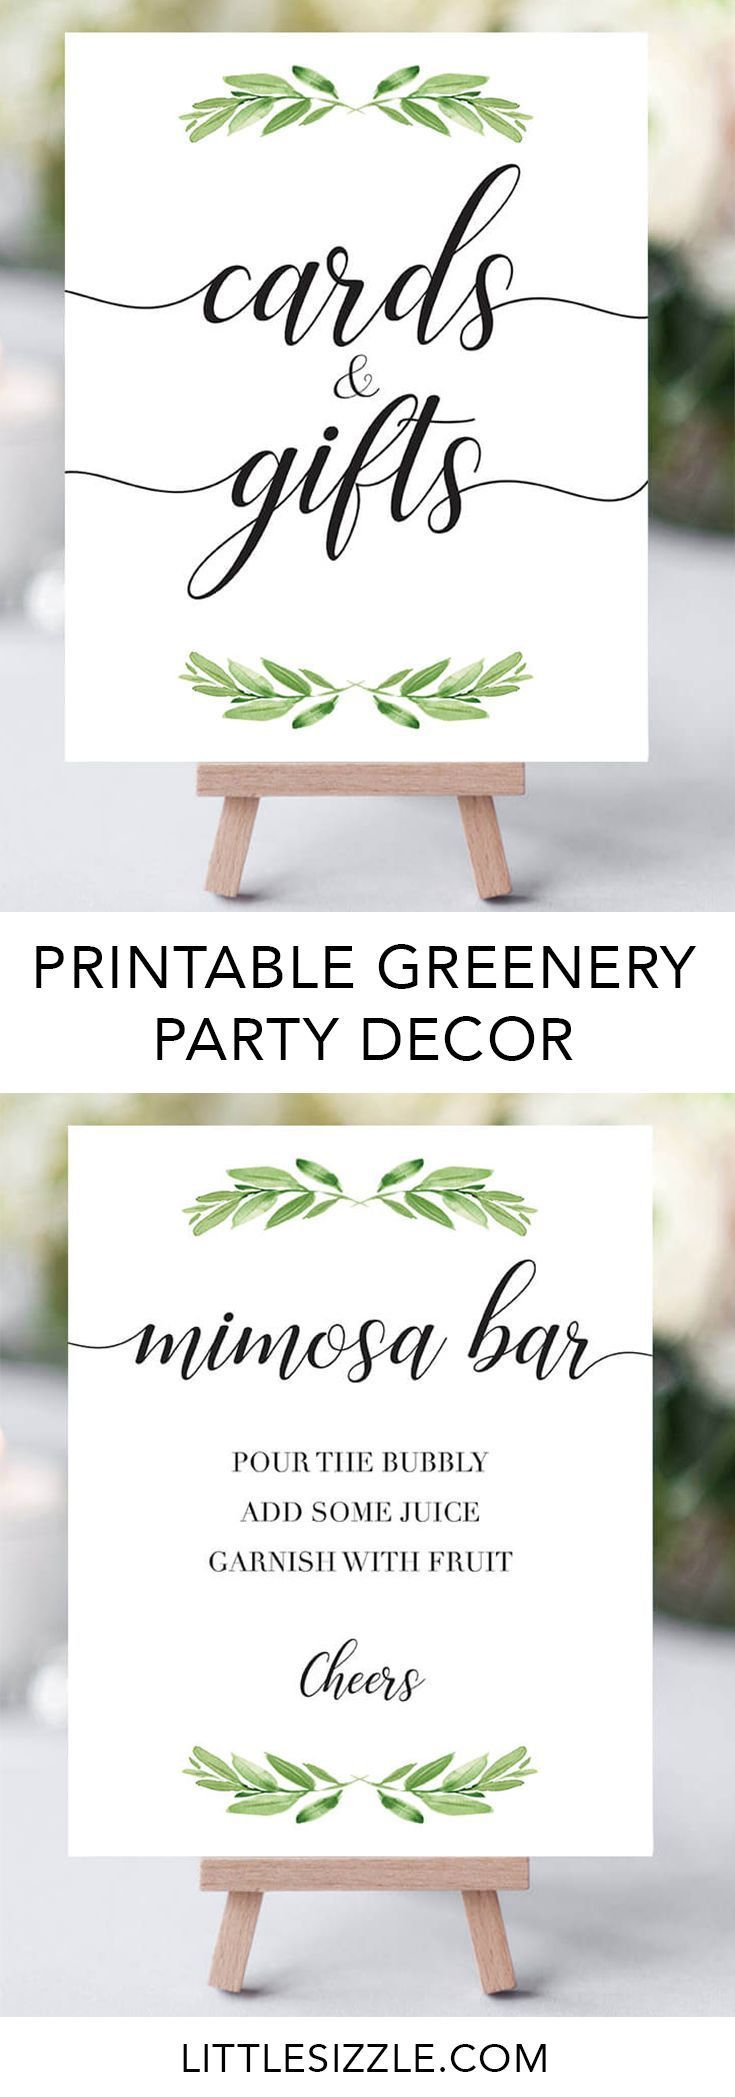 Greenery party decor by LittleSizzle. Printable Green Party decorations. Make decorating your botanical party a fun and easy DIY project with these printable signs. Cards and gifts sign, mimosa bar sign and party thank you favors signs to print at home. A